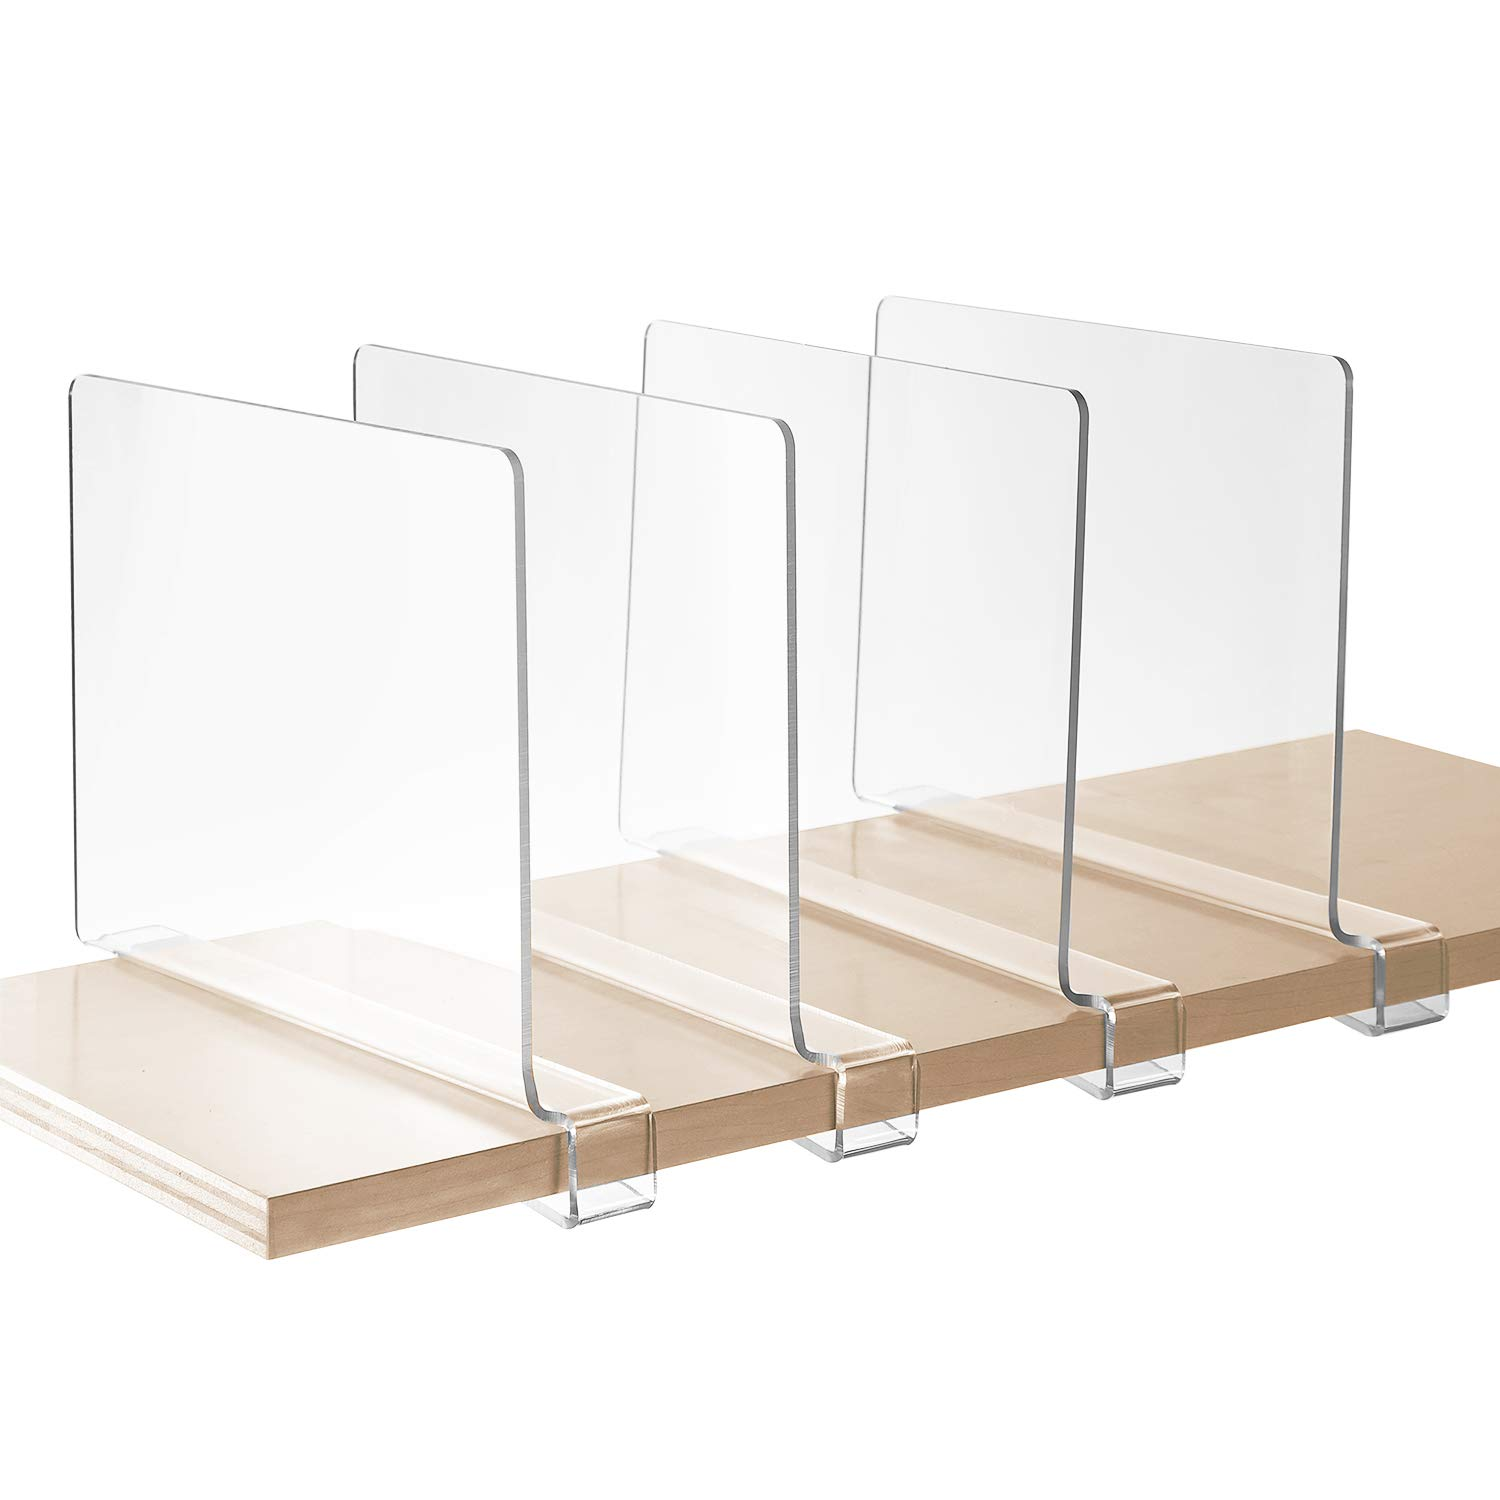 StorageMaid - Set of 4 - Acrylic Shelf Dividers for Bedroom Closets, Kitchen Cabinets, Wood Shelves, Bookcases and Libraries - Versatile, Multi-Functional Organizers for Home and Office - Clear by StorageMaid